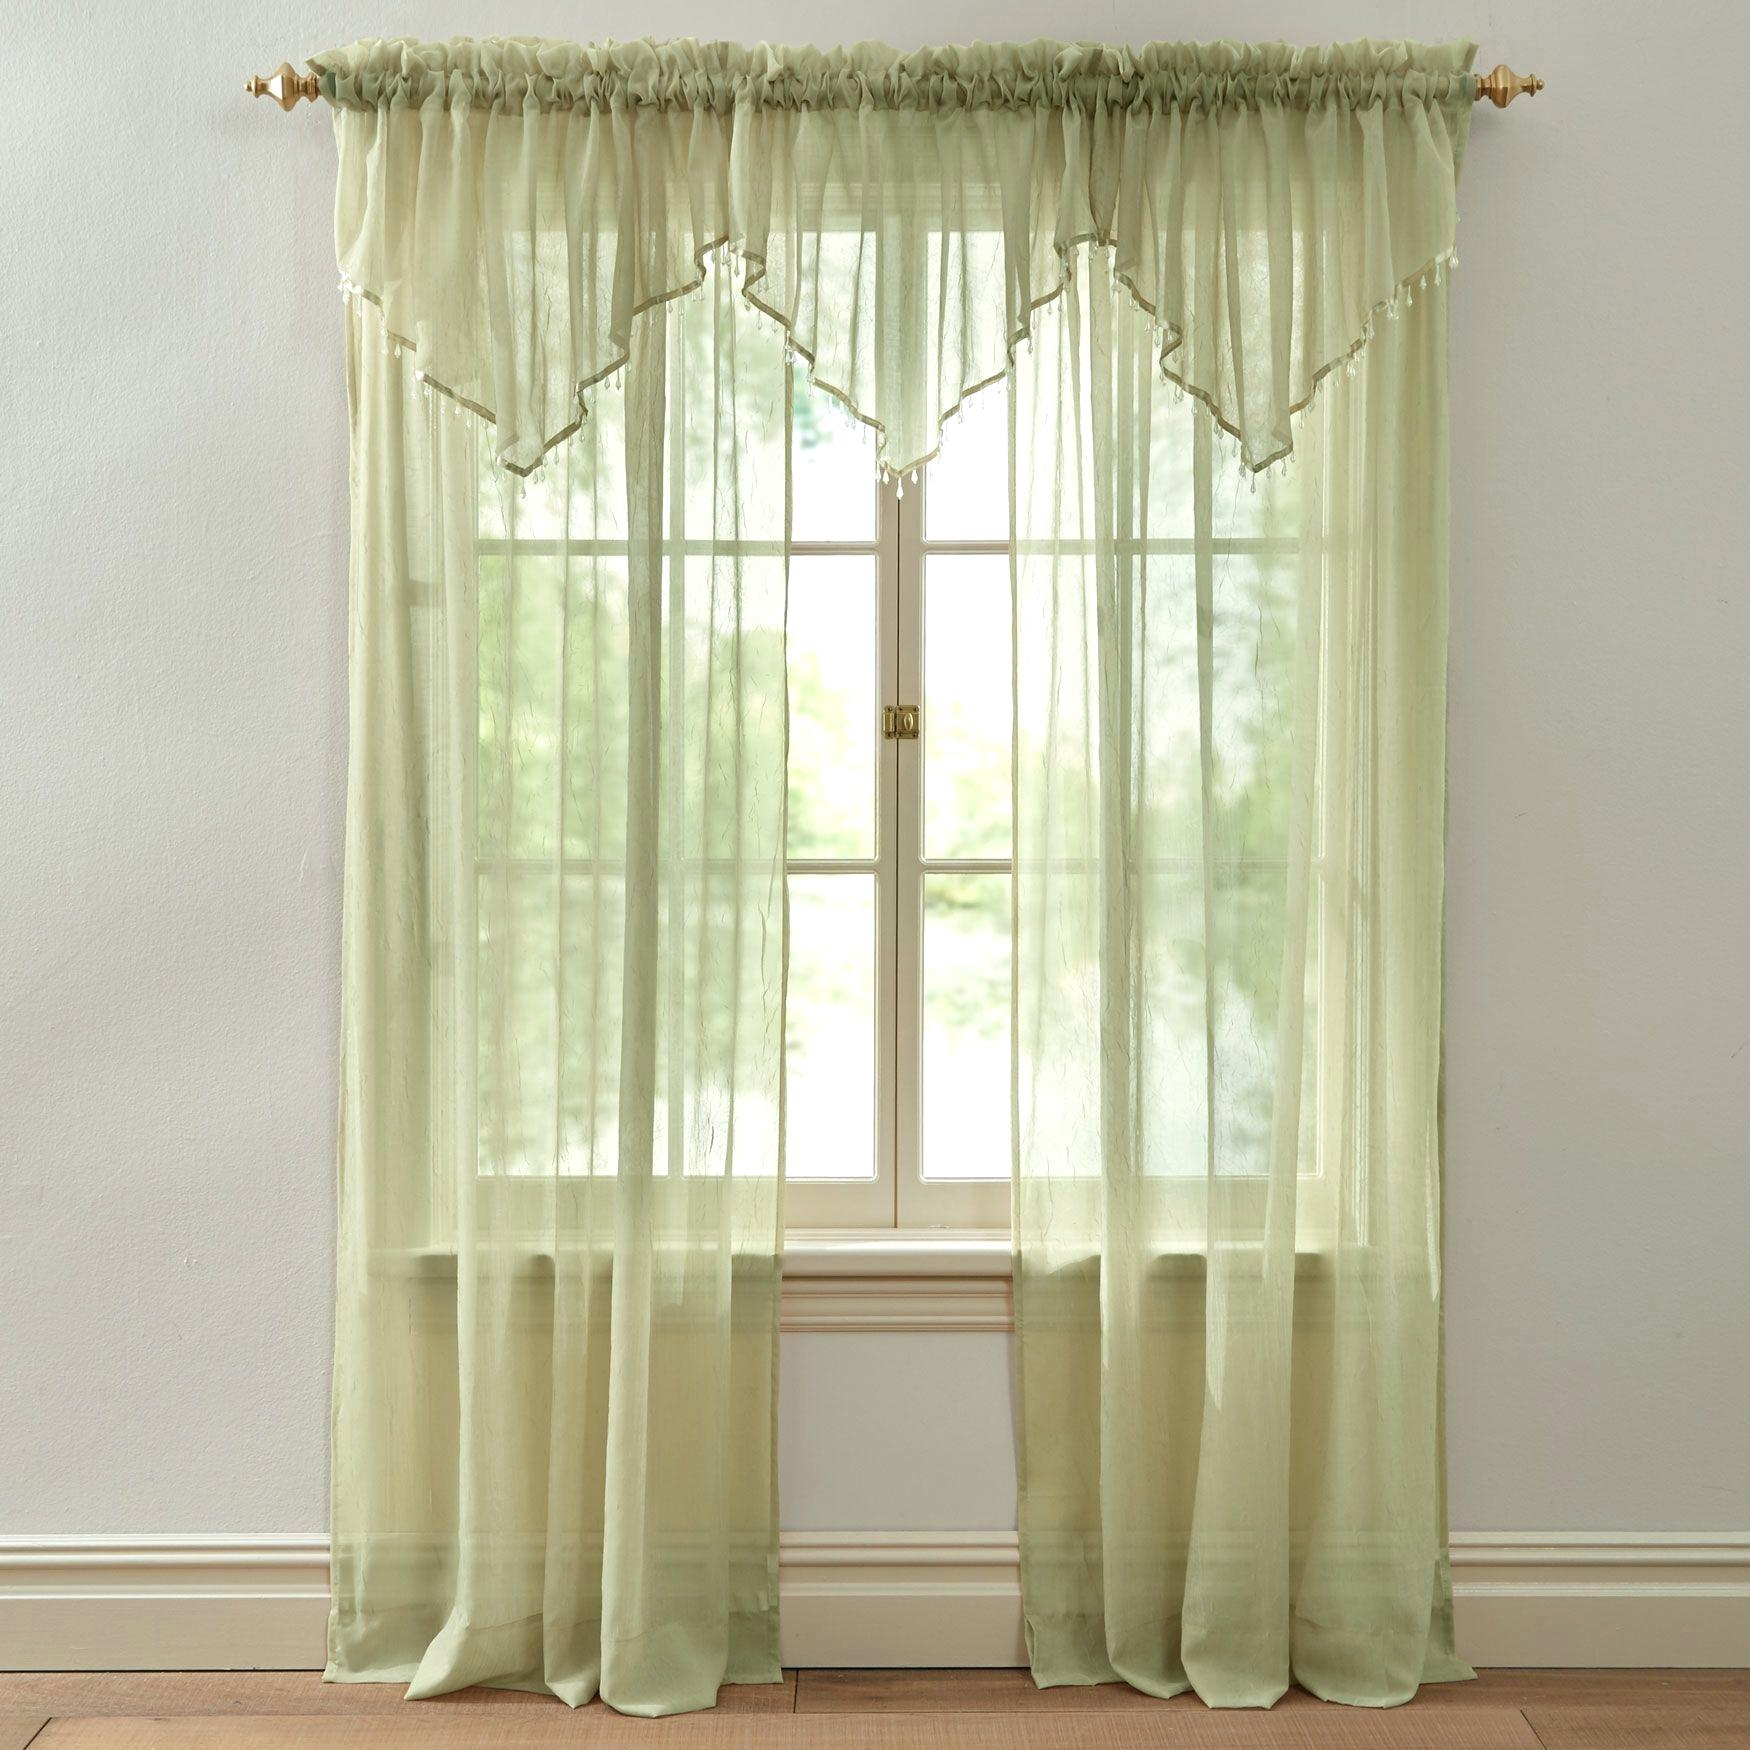 Crushed Voile Curtains Regarding Erica Sheer Crushed Voile Single Curtain Panels (View 17 of 20)